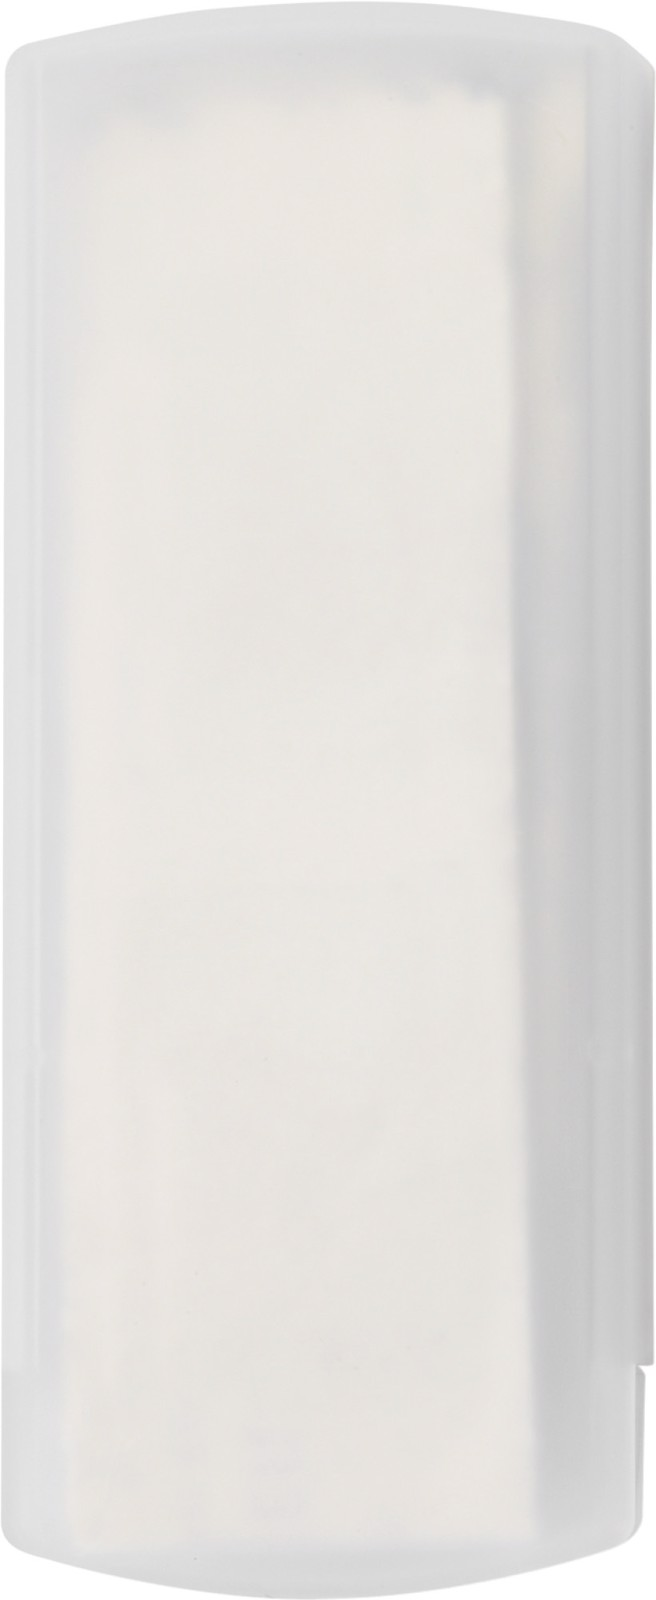 Plastic case with plasters - White